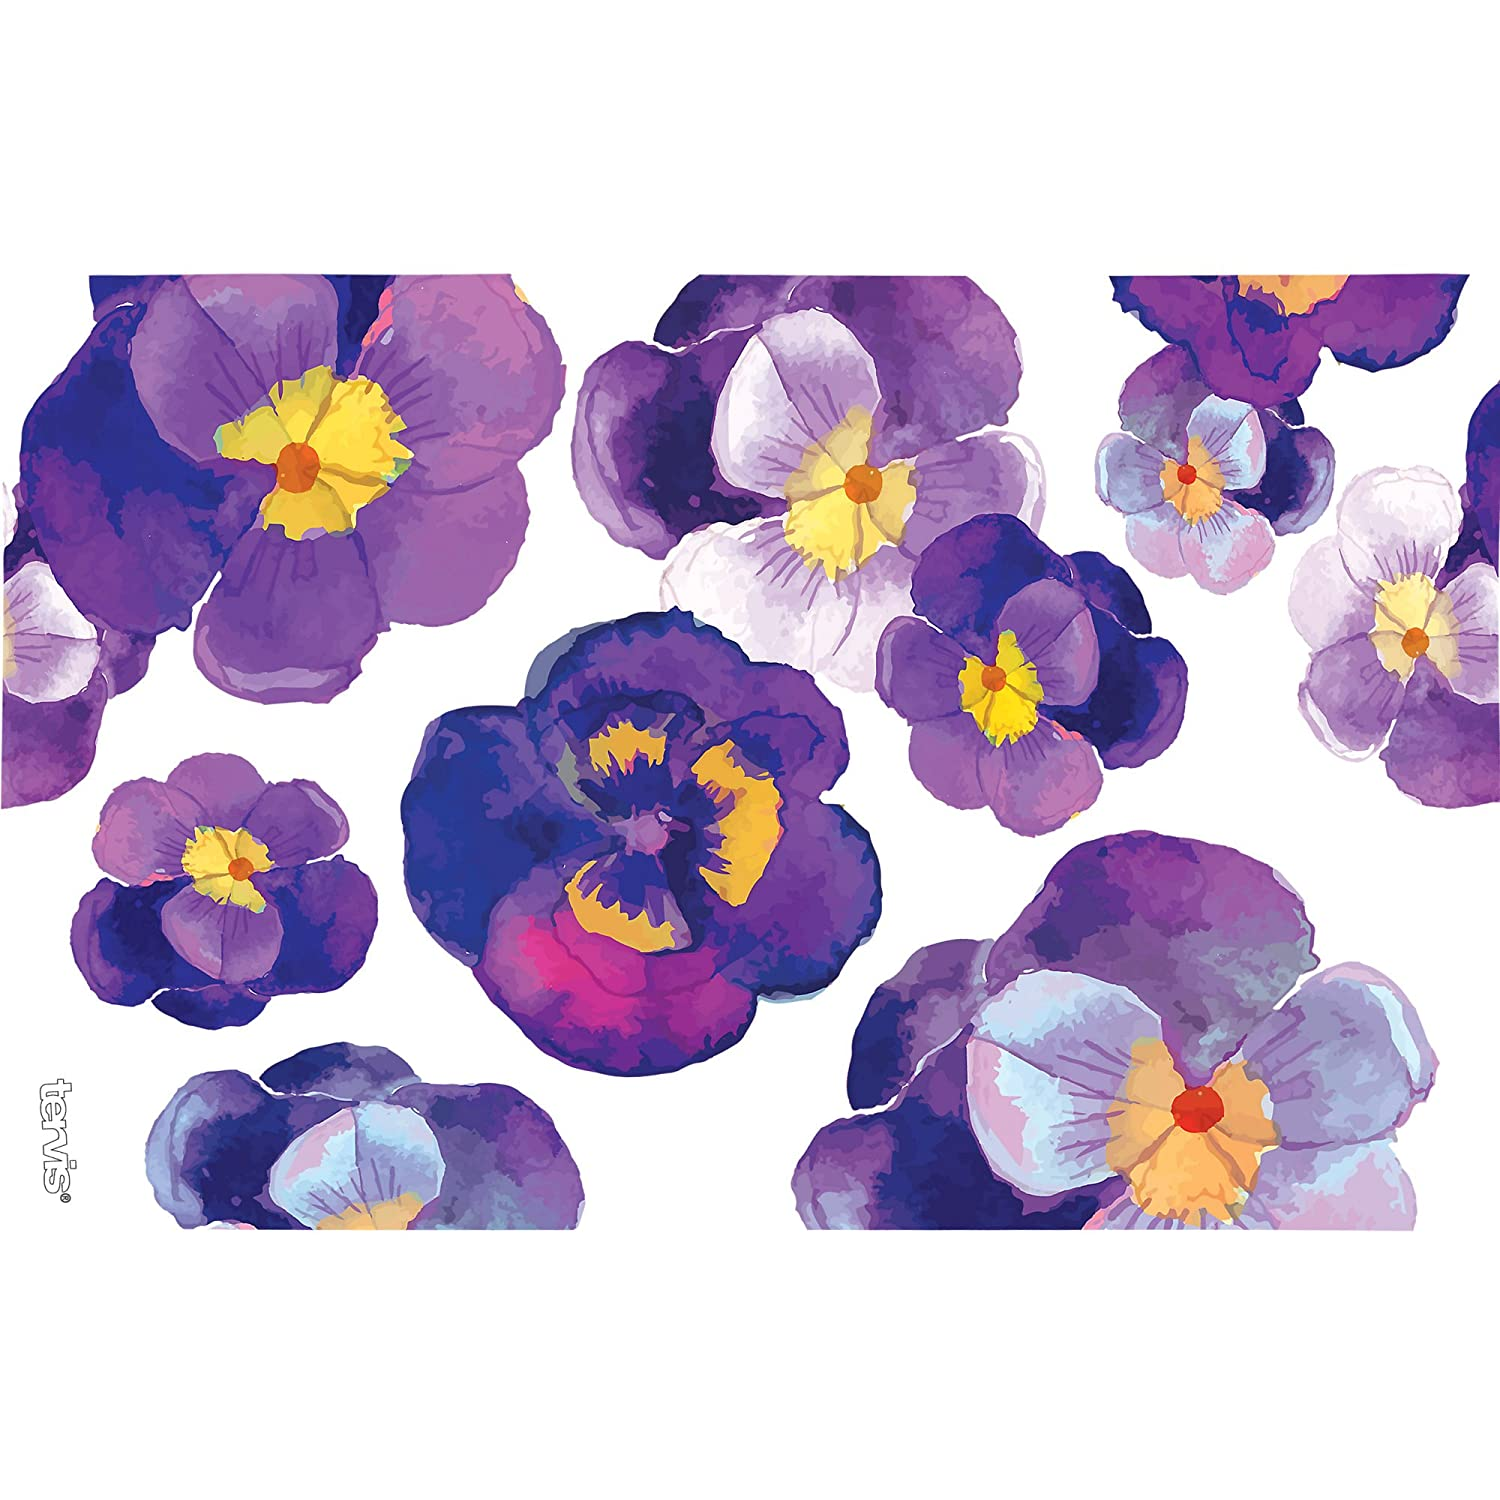 Tervis 1243665 Watercolor Pansy Tumbler with Wrap and Royal Purple Lid 16oz Clear